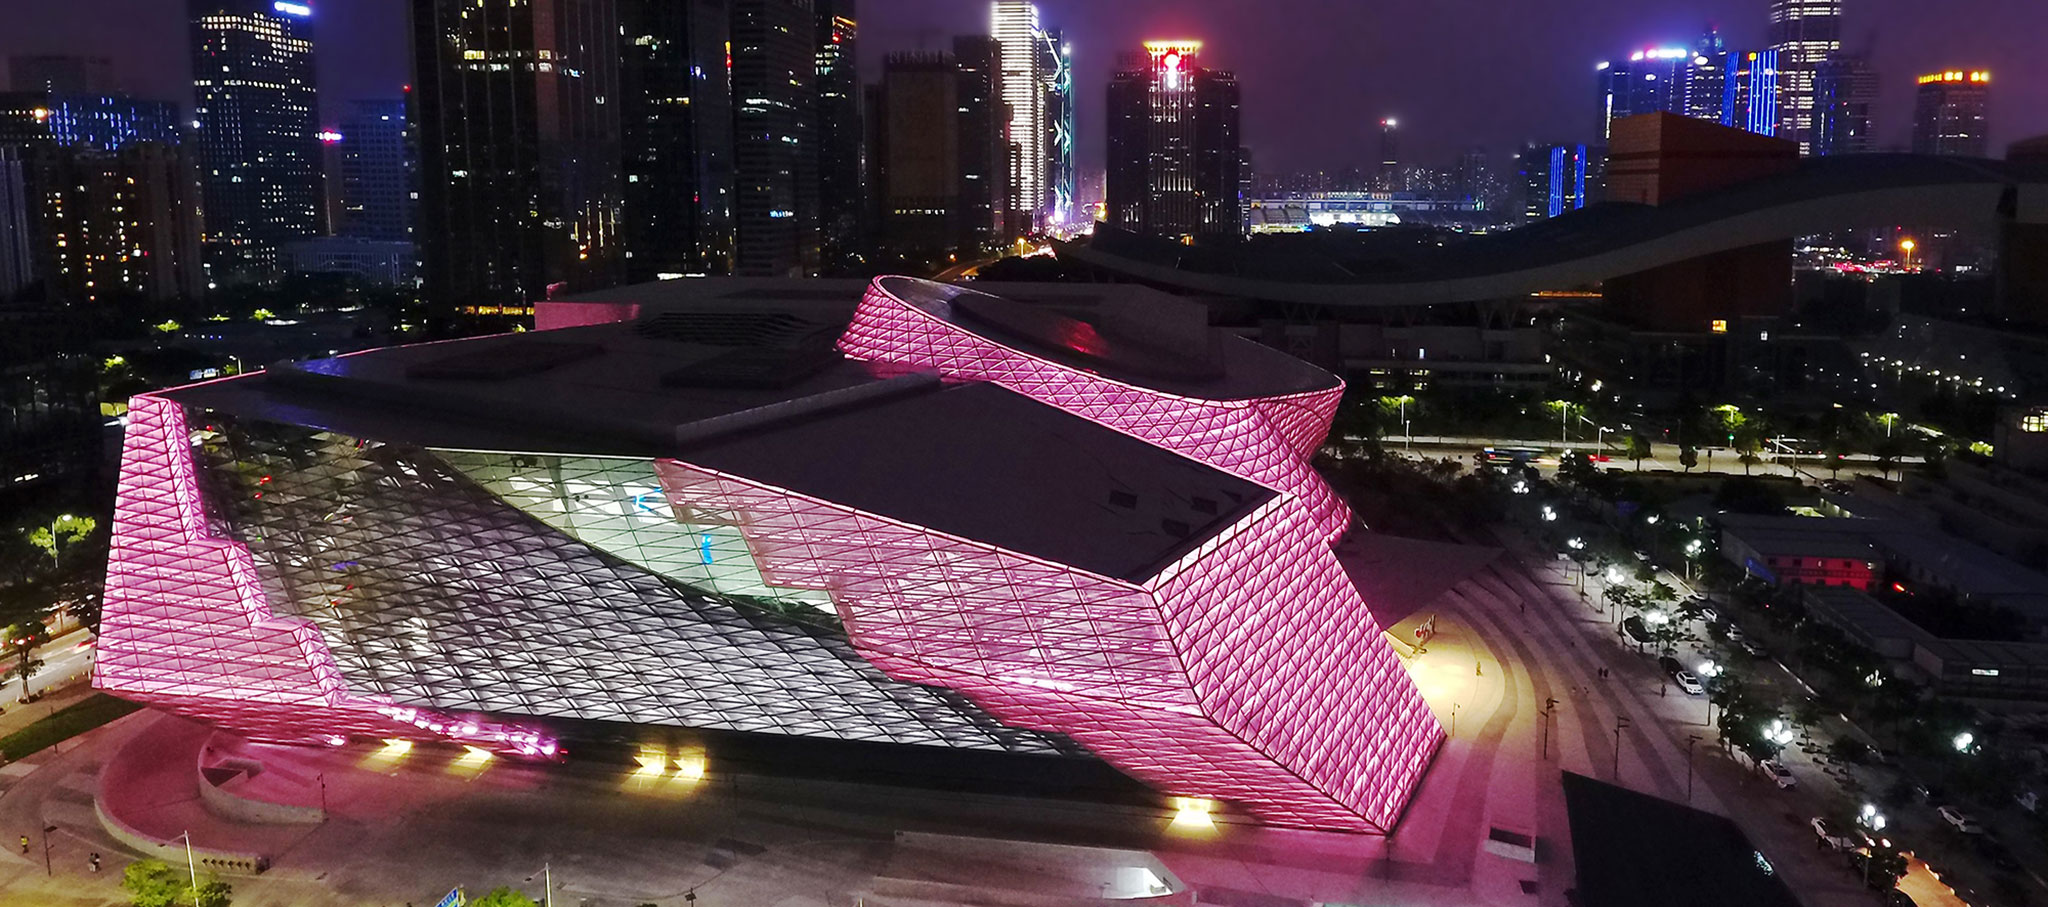 Overview at night. Architectural Lighting Design for Mocape Shenzhen. Photograph © Shu He